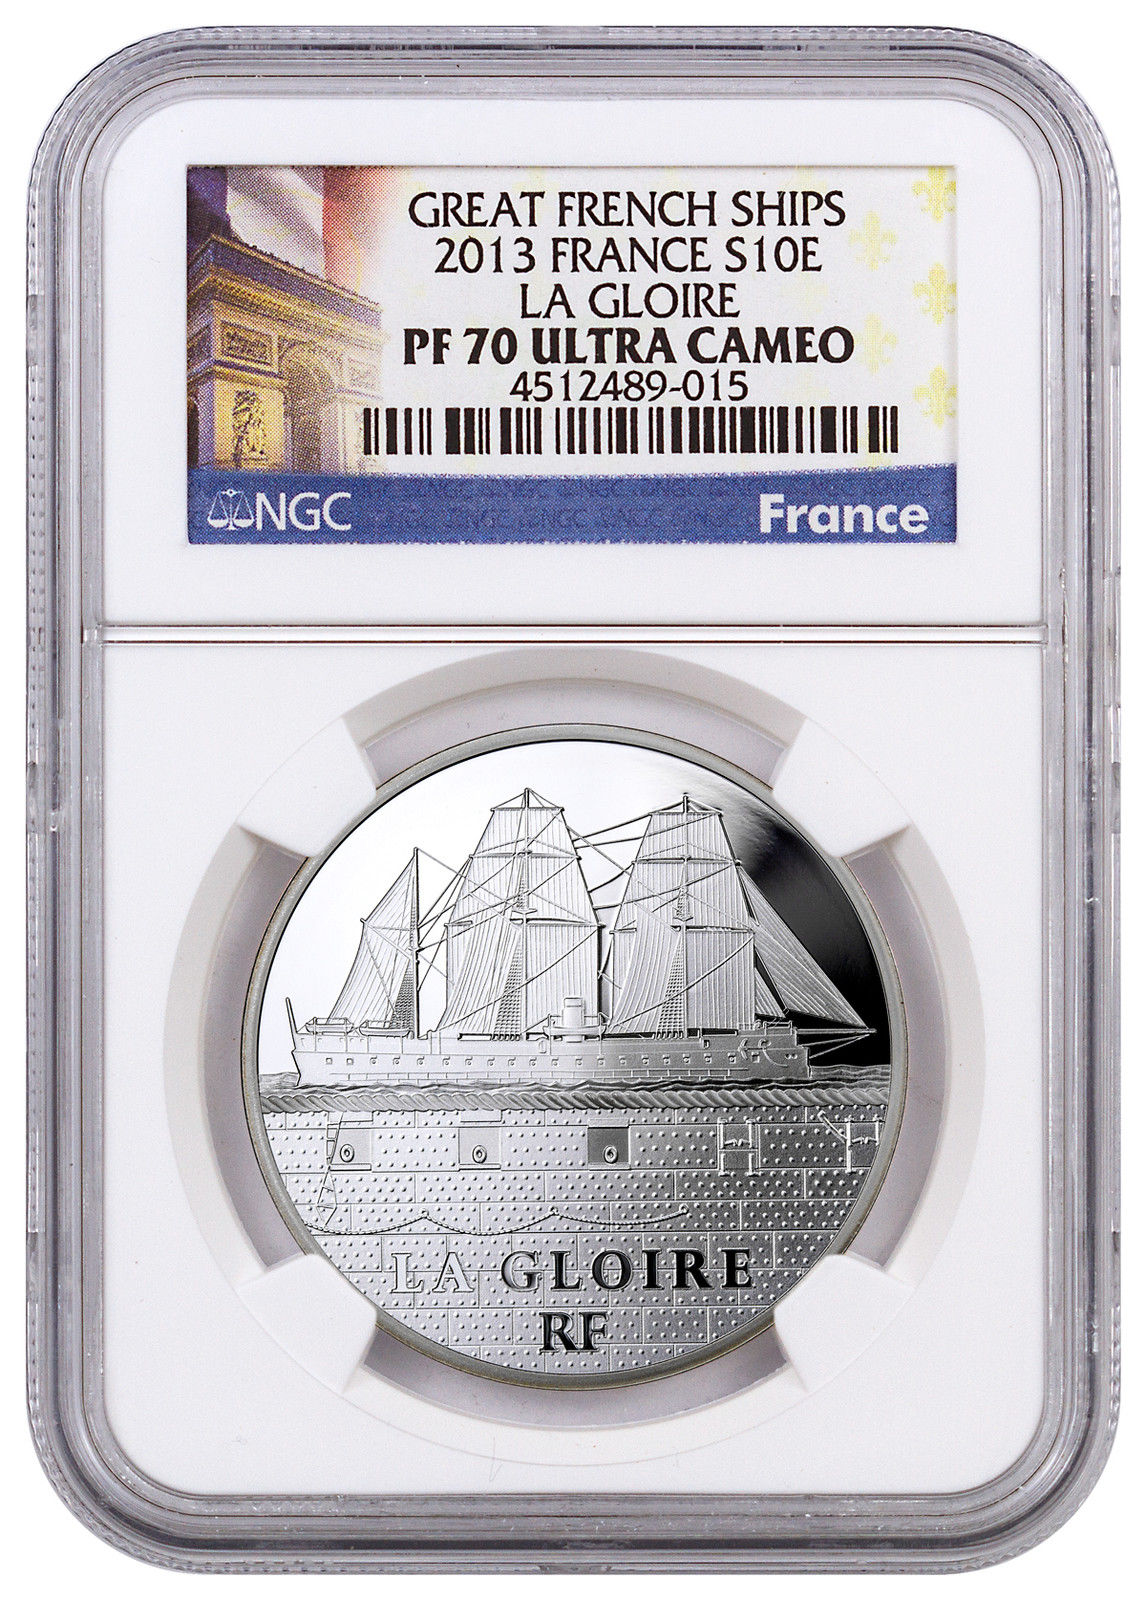 Haining tide in France in 2013 the great ship ship Nagelu series of commemorative coins NGC-PF70